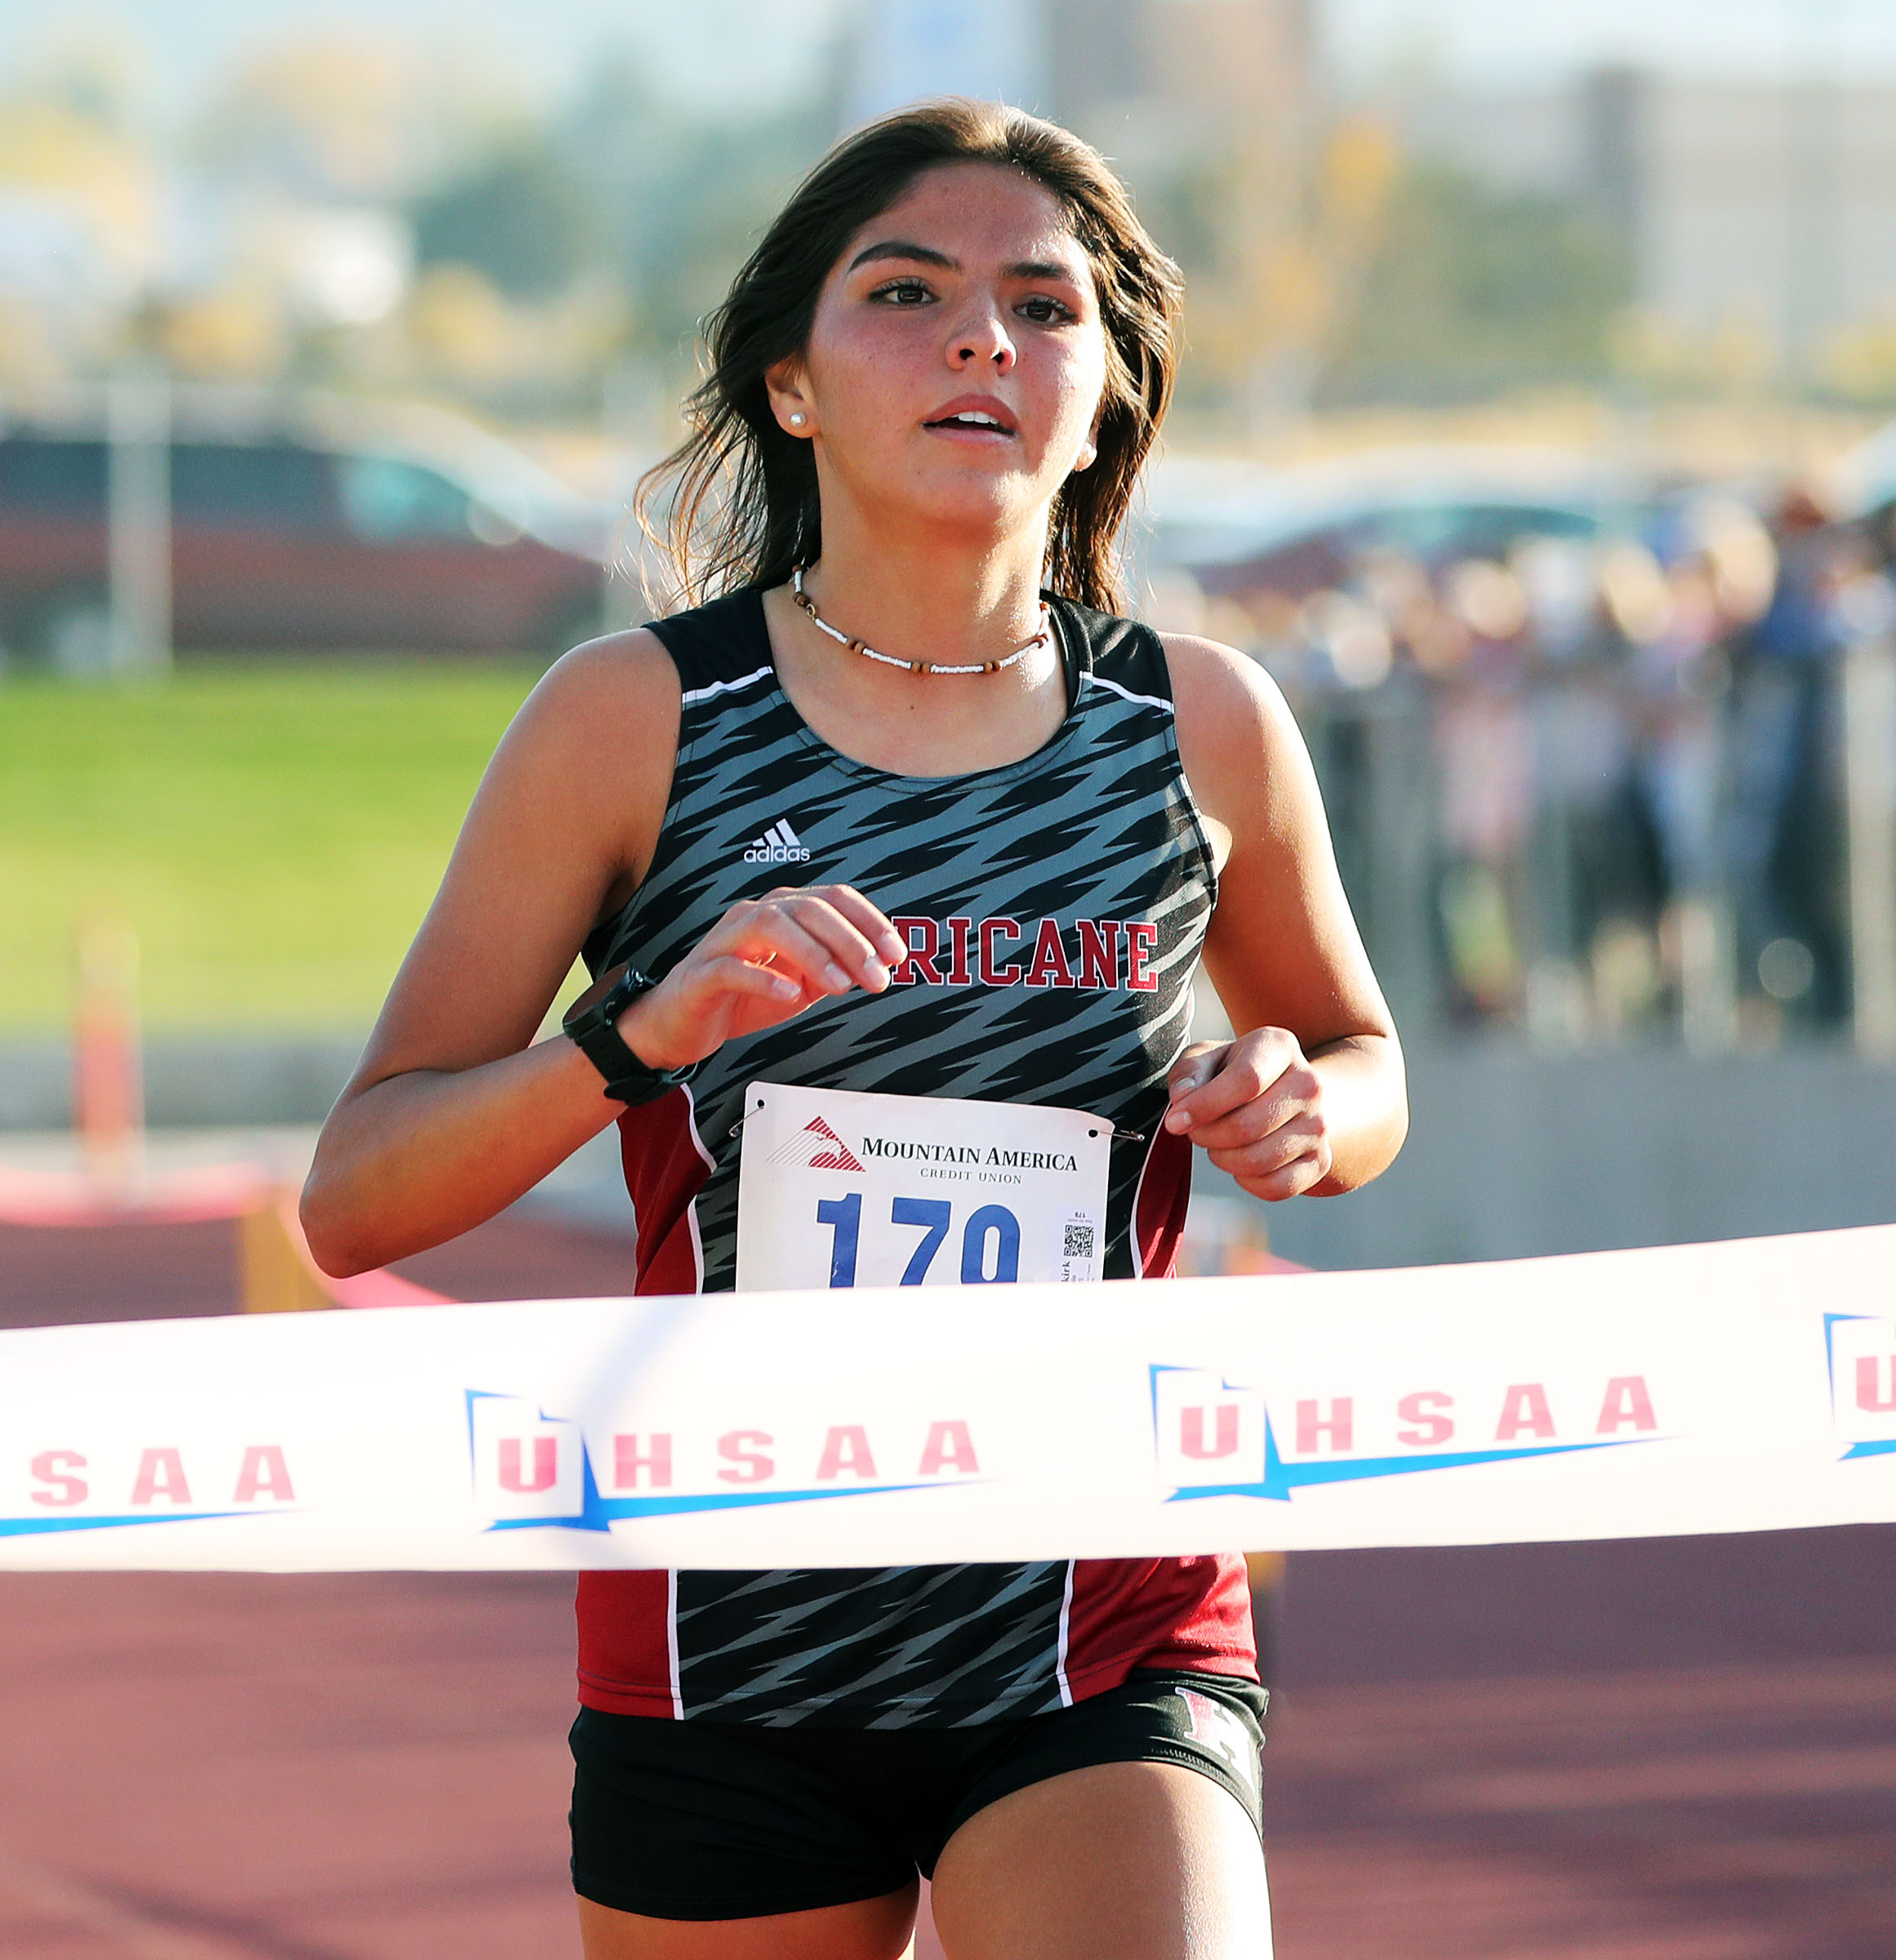 Caila Odekirk of Hurricane High School wins the 4A state girls high school cross-country championship in Cedar City on Wednesday, Oct. 21, 2020.